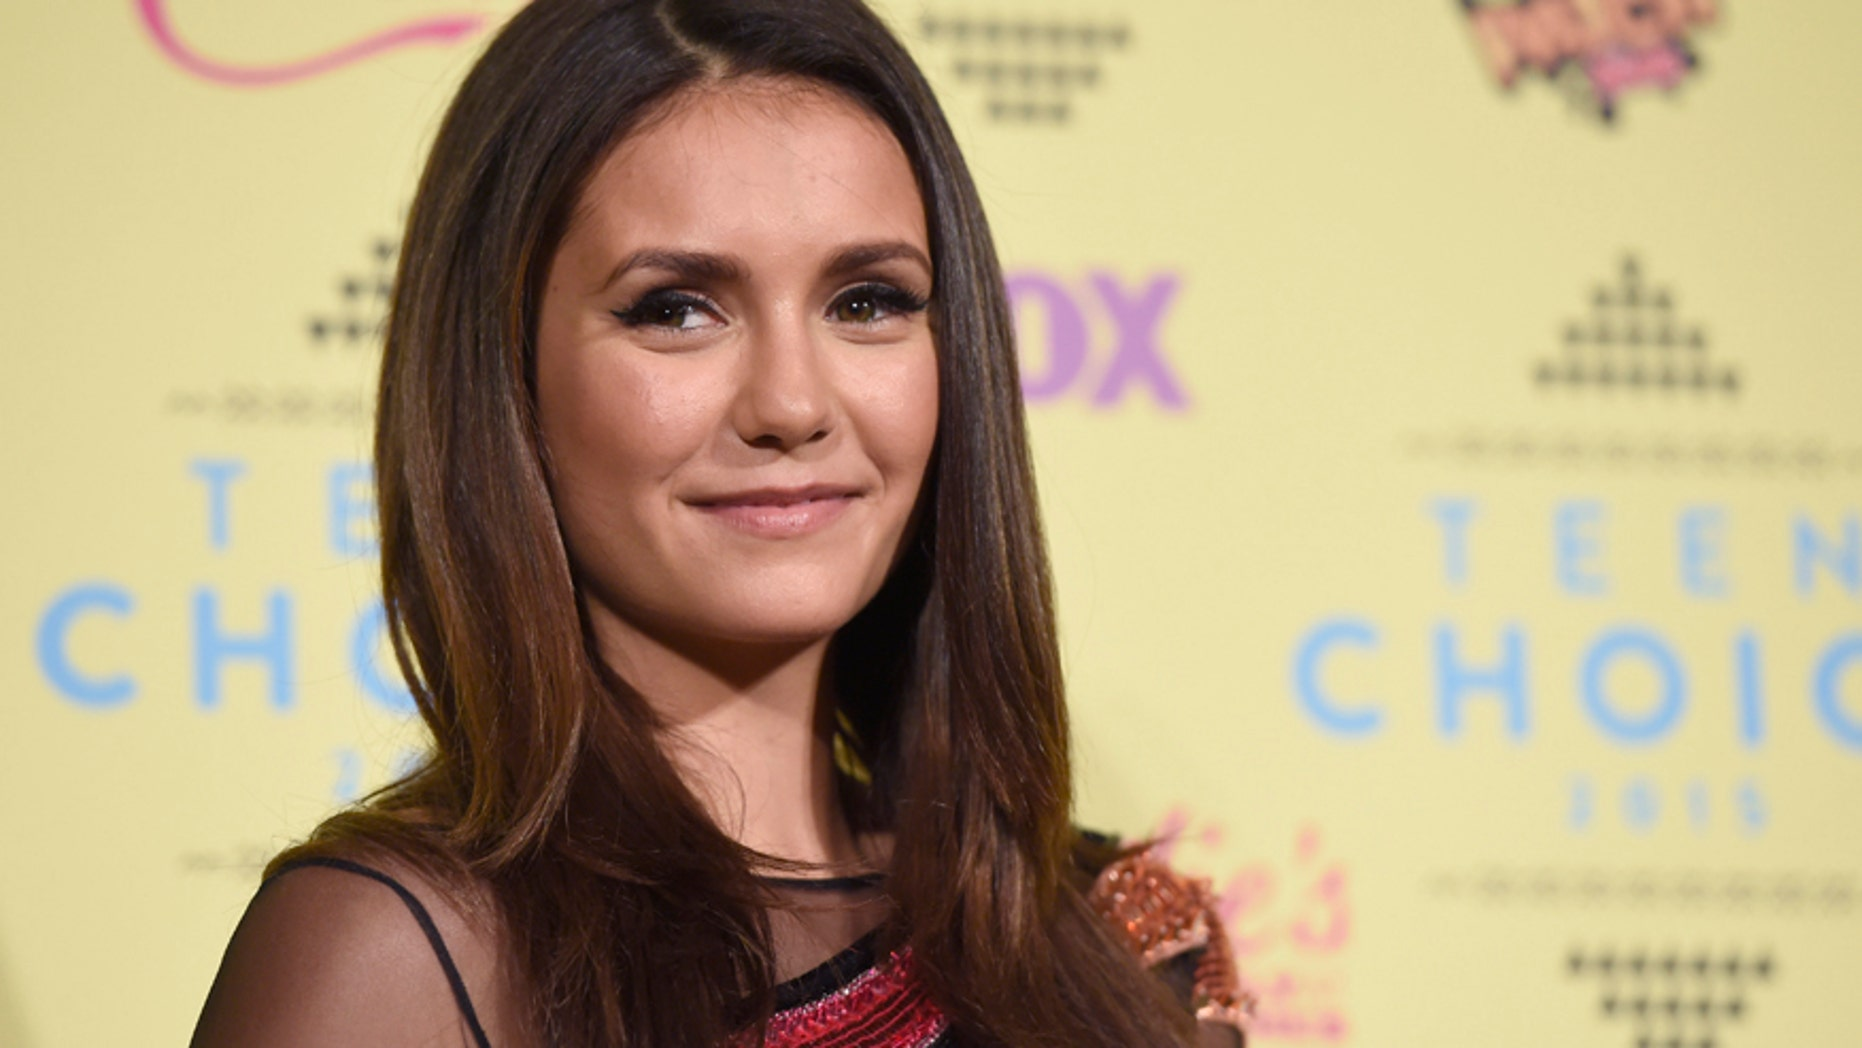 Nina Dobrev, winner of the choice TV  actress: sci-fi fantasy award for The Vampire Diaries, poses in the press room at the Teen Choice Awards at the Galen Center on Sunday, Aug. 16, 2015, in Los Angeles. (Photo by Chris Pizzello/Invision/AP)